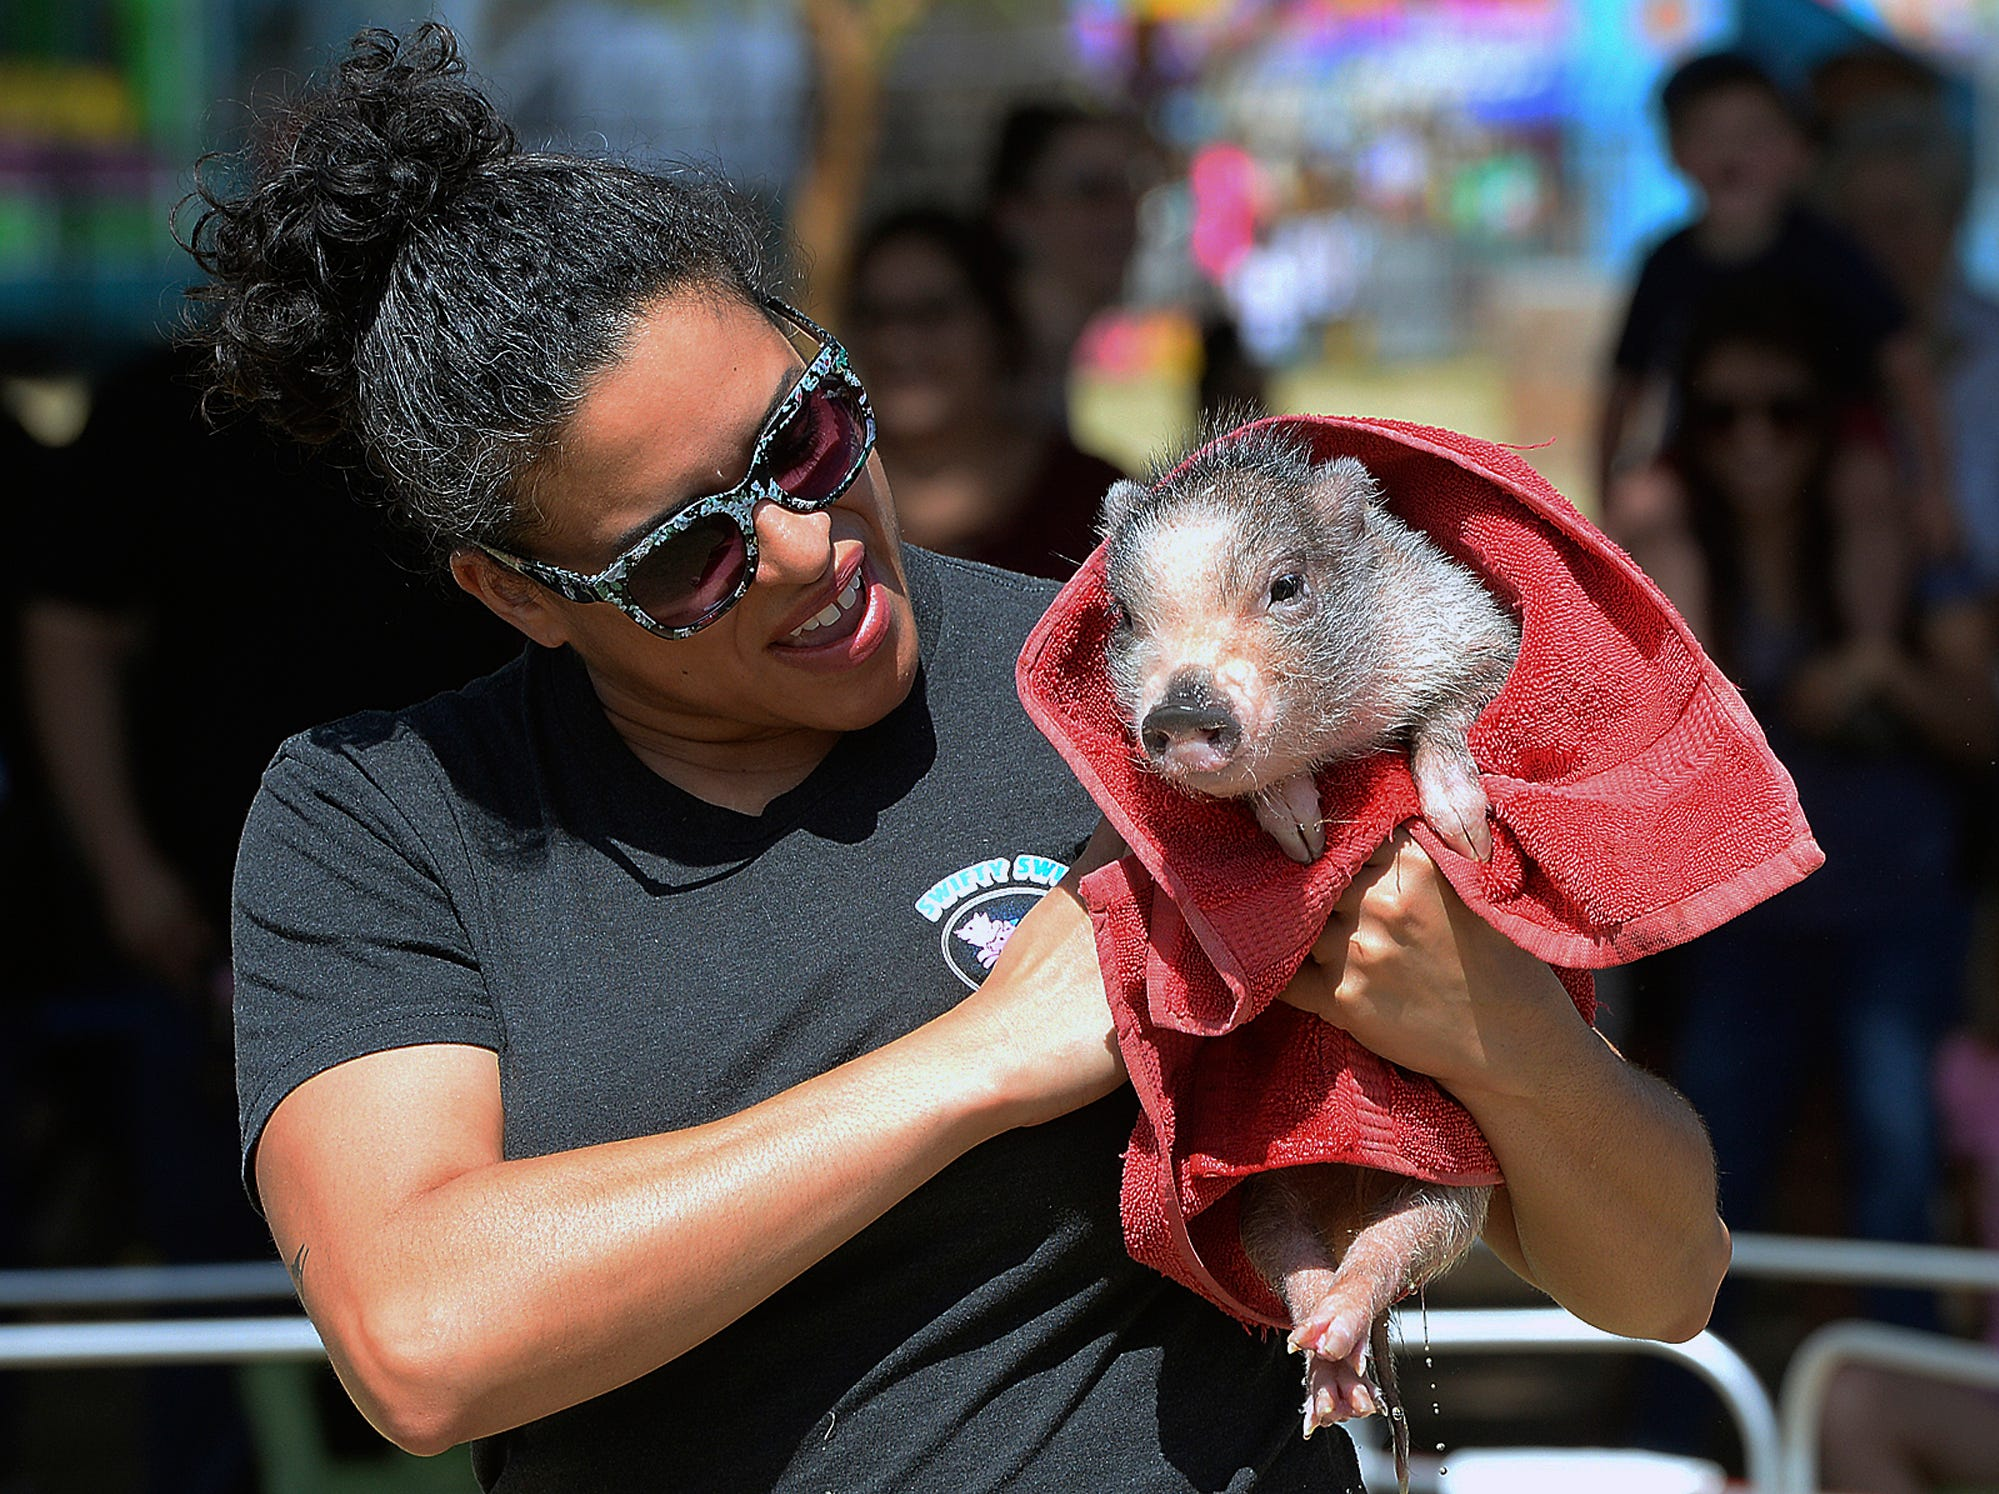 """Kelsie Adkisson wraps Swifty the swimming pig in a towel after the pig jumped into the """"pool"""" for a quick sprint to the other end during a Swifty Swine Racing Pigs heat race, Wednesday, April 3, 2019, at the annual Yuma County Fair, in Yuma, Ariz."""